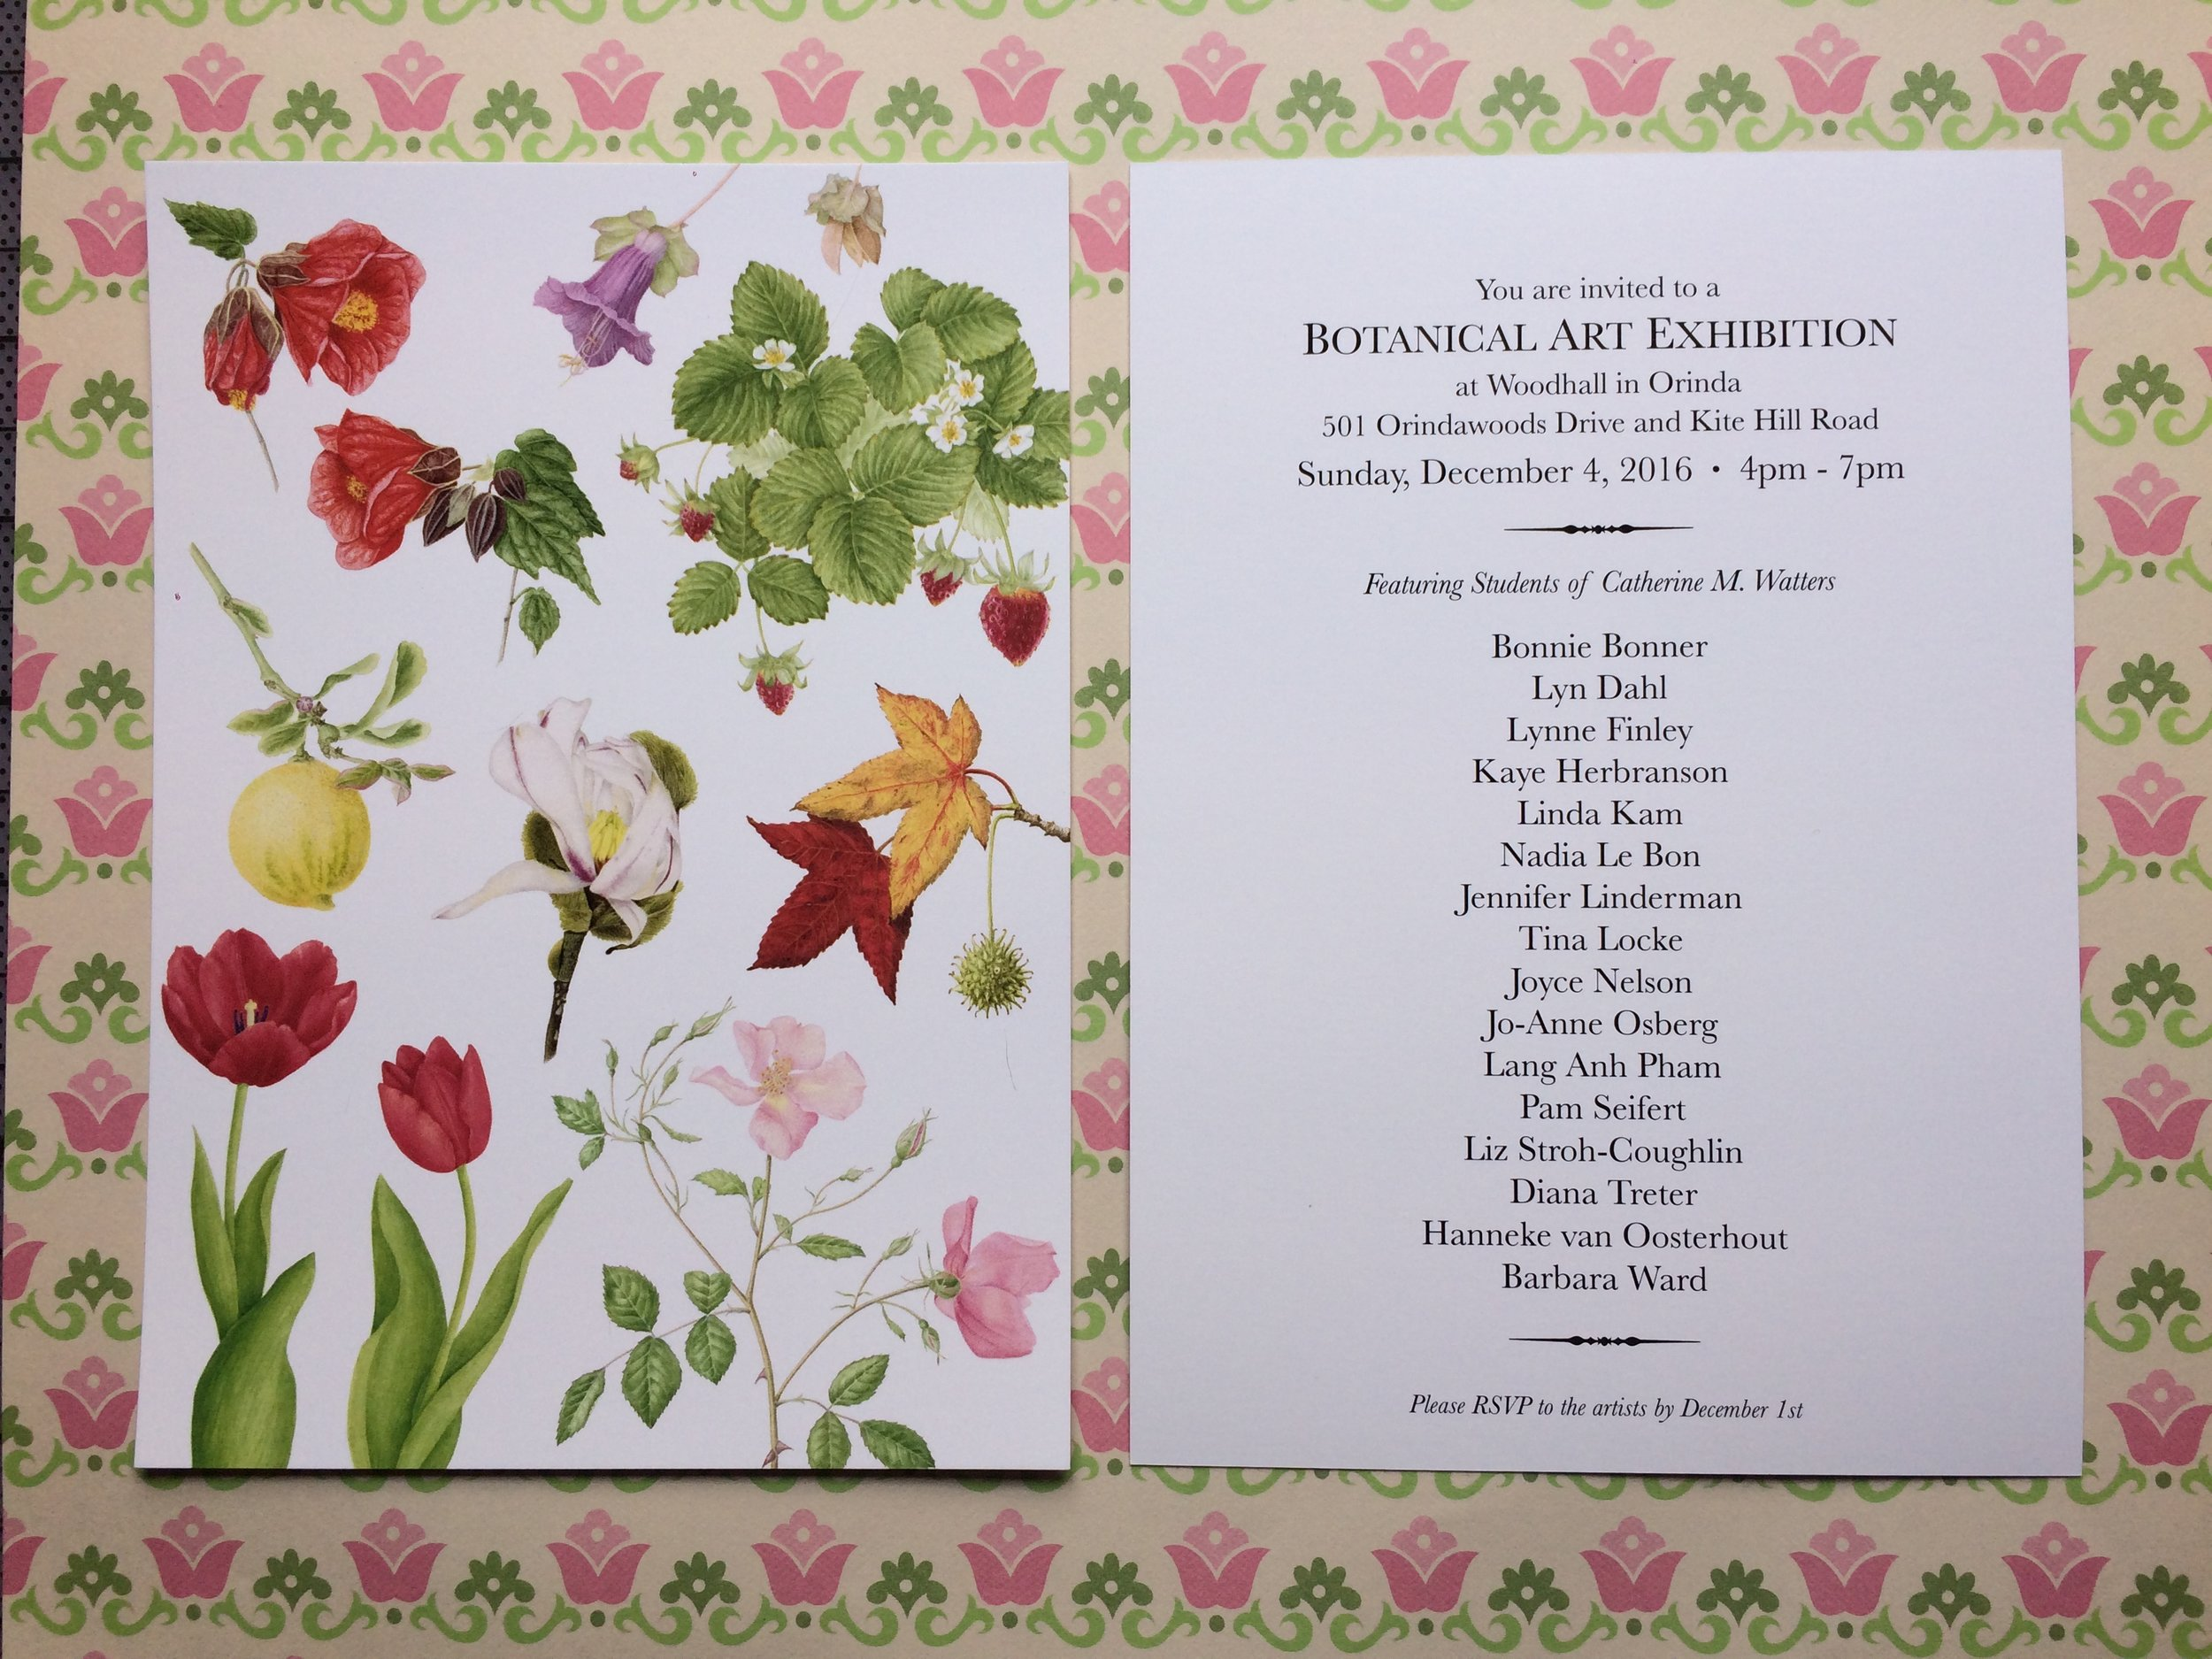 I am participating in my Botanic Illustration student show and will be in the company of other amazing artists who will be displaying their works of art. There will be watercolor and colored pencil pieces.  Join us for an evening of great art, food and drinks and purchase a signed copy of my new coloring book, Botanimals: A Coloring Book of Flora and Fauna which is now available on Amazon!